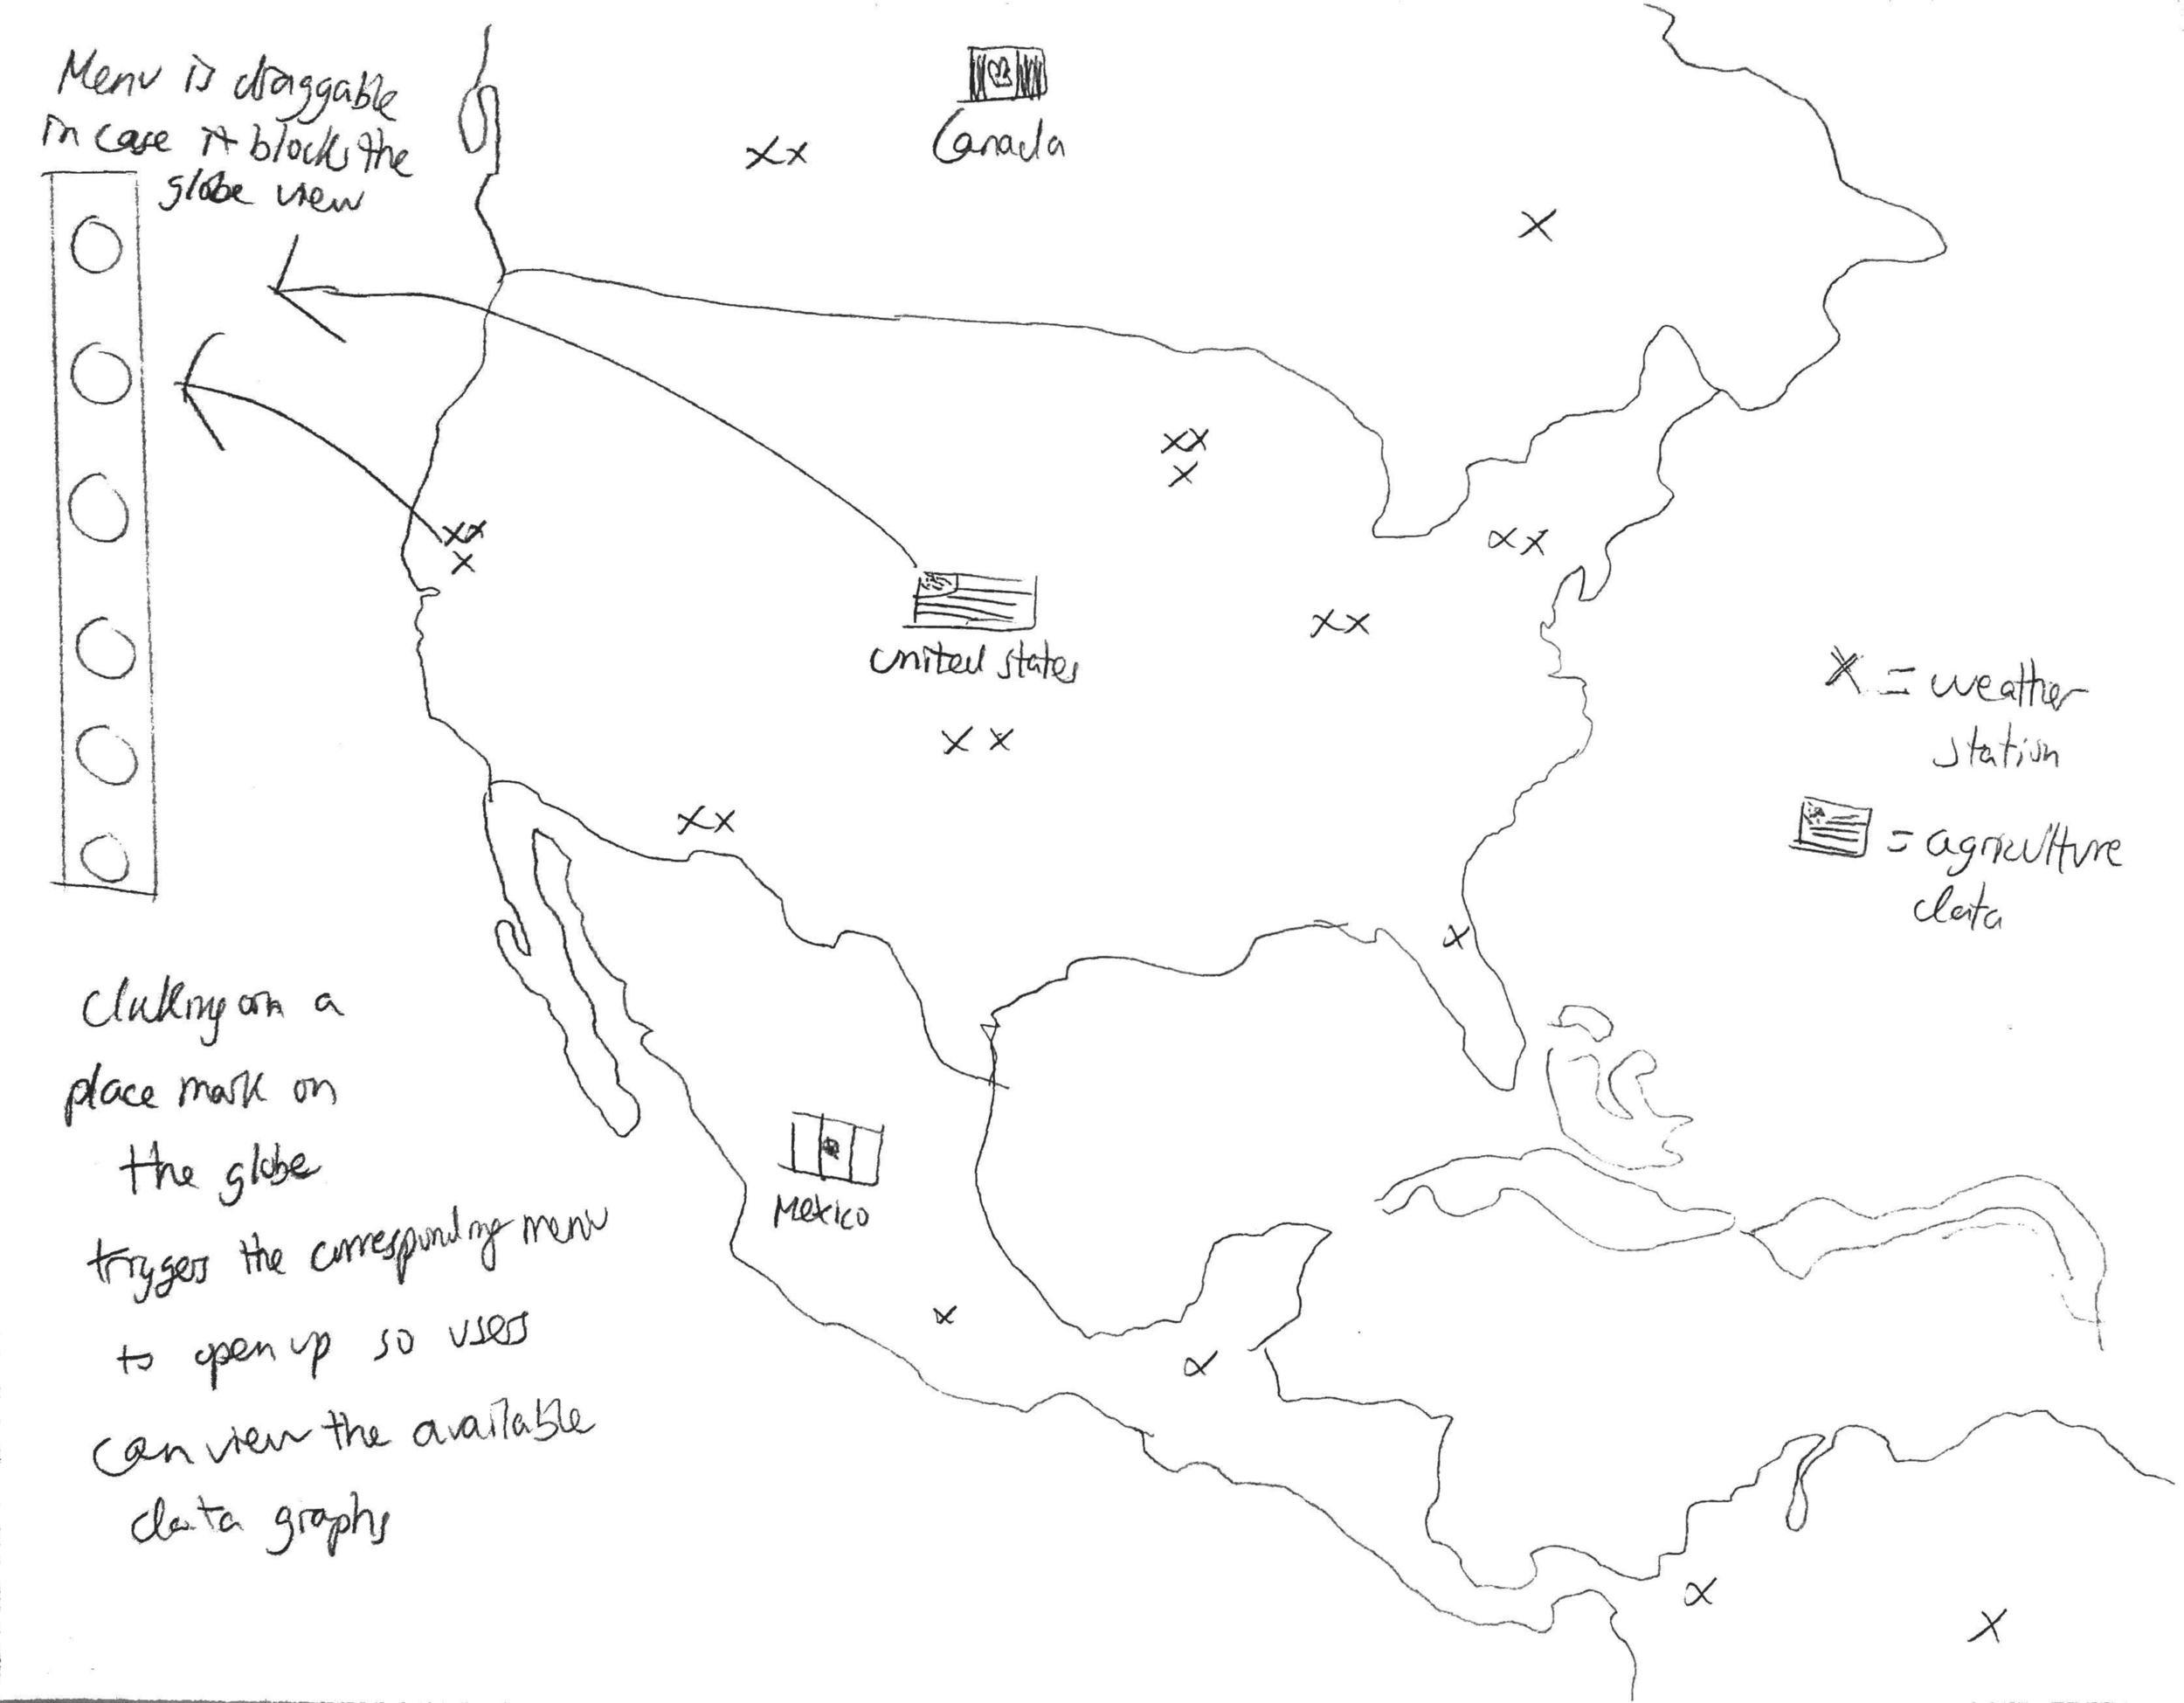 Sketch of the interface and placemarks (flags and weather stations) and the interactions with those placemarks that reveal agriculture and climate data